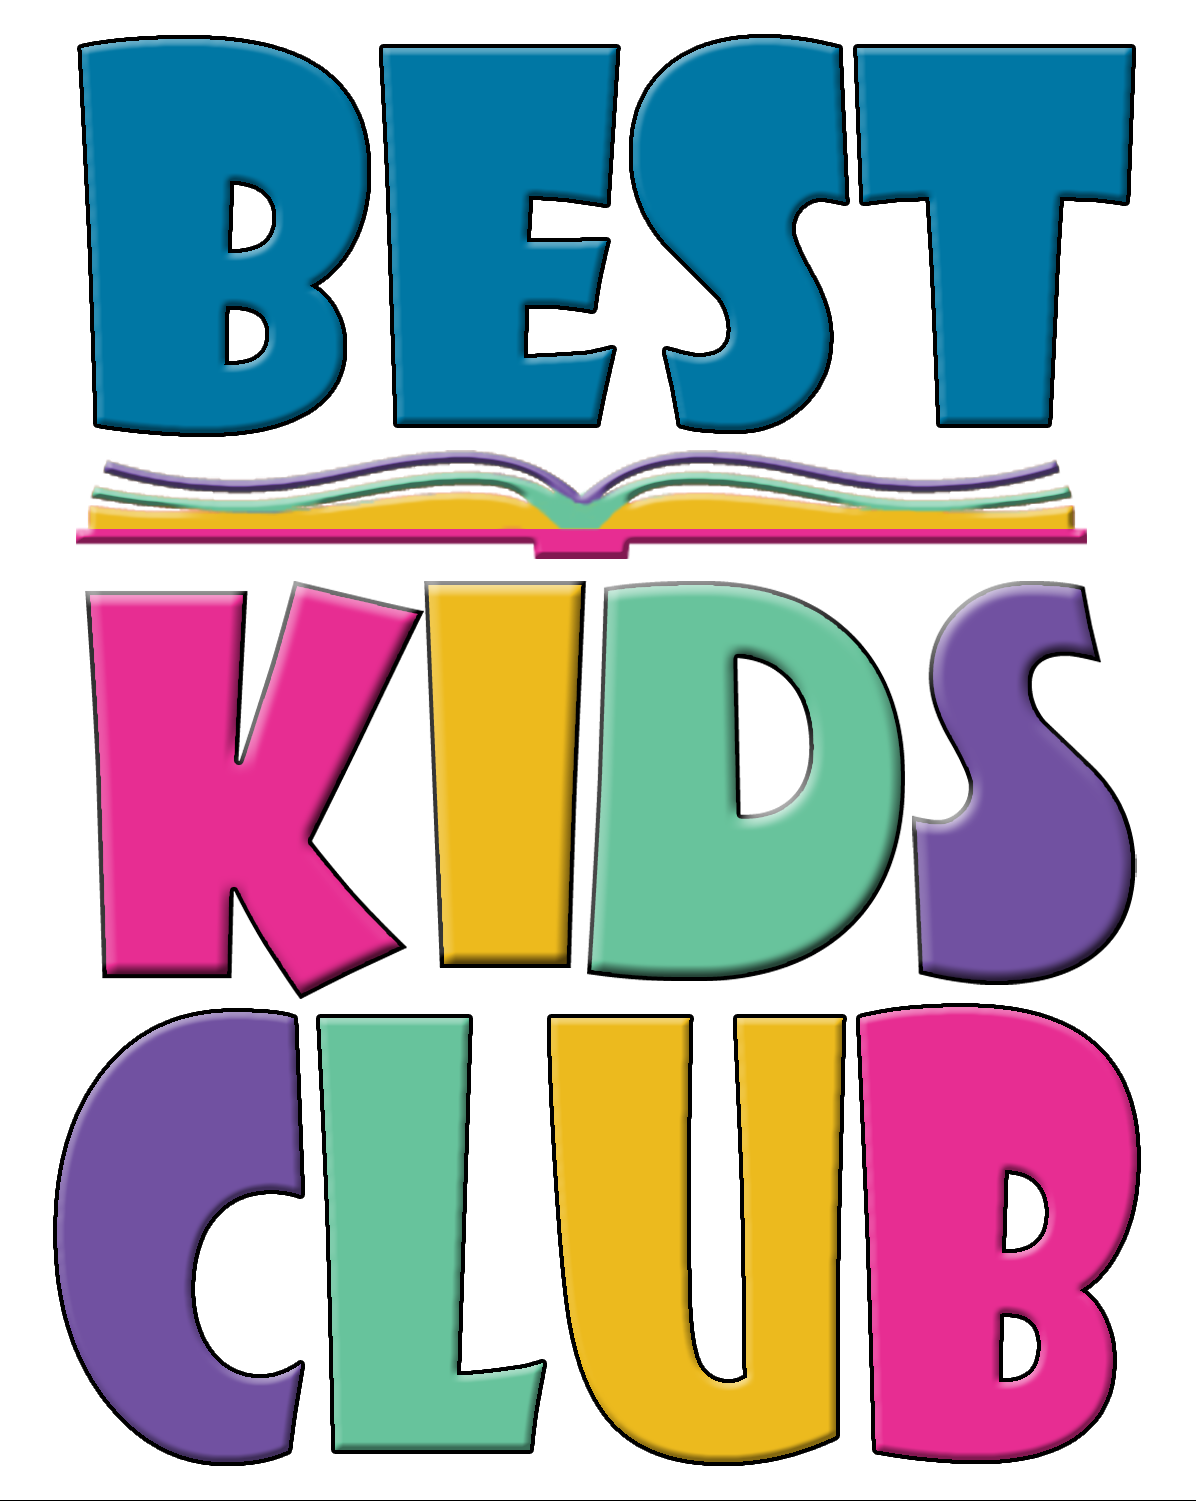 BPC Kids Club ALT4 1